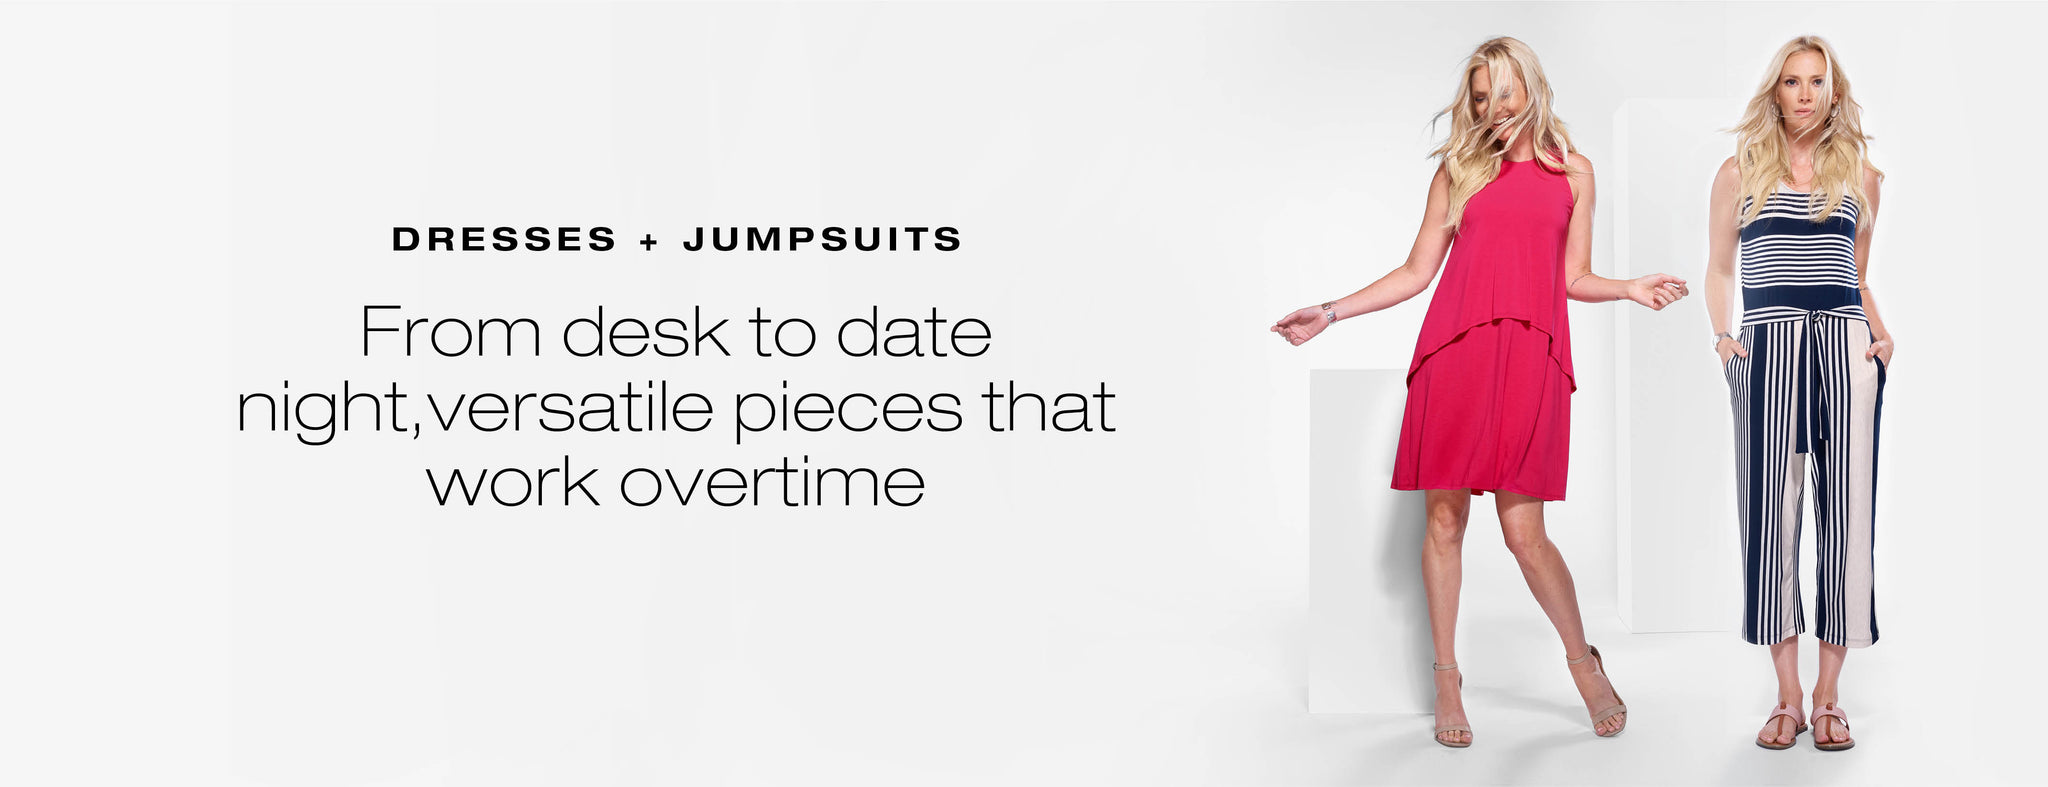 aac713f9917 Dresses and Jumpsuits  Casual